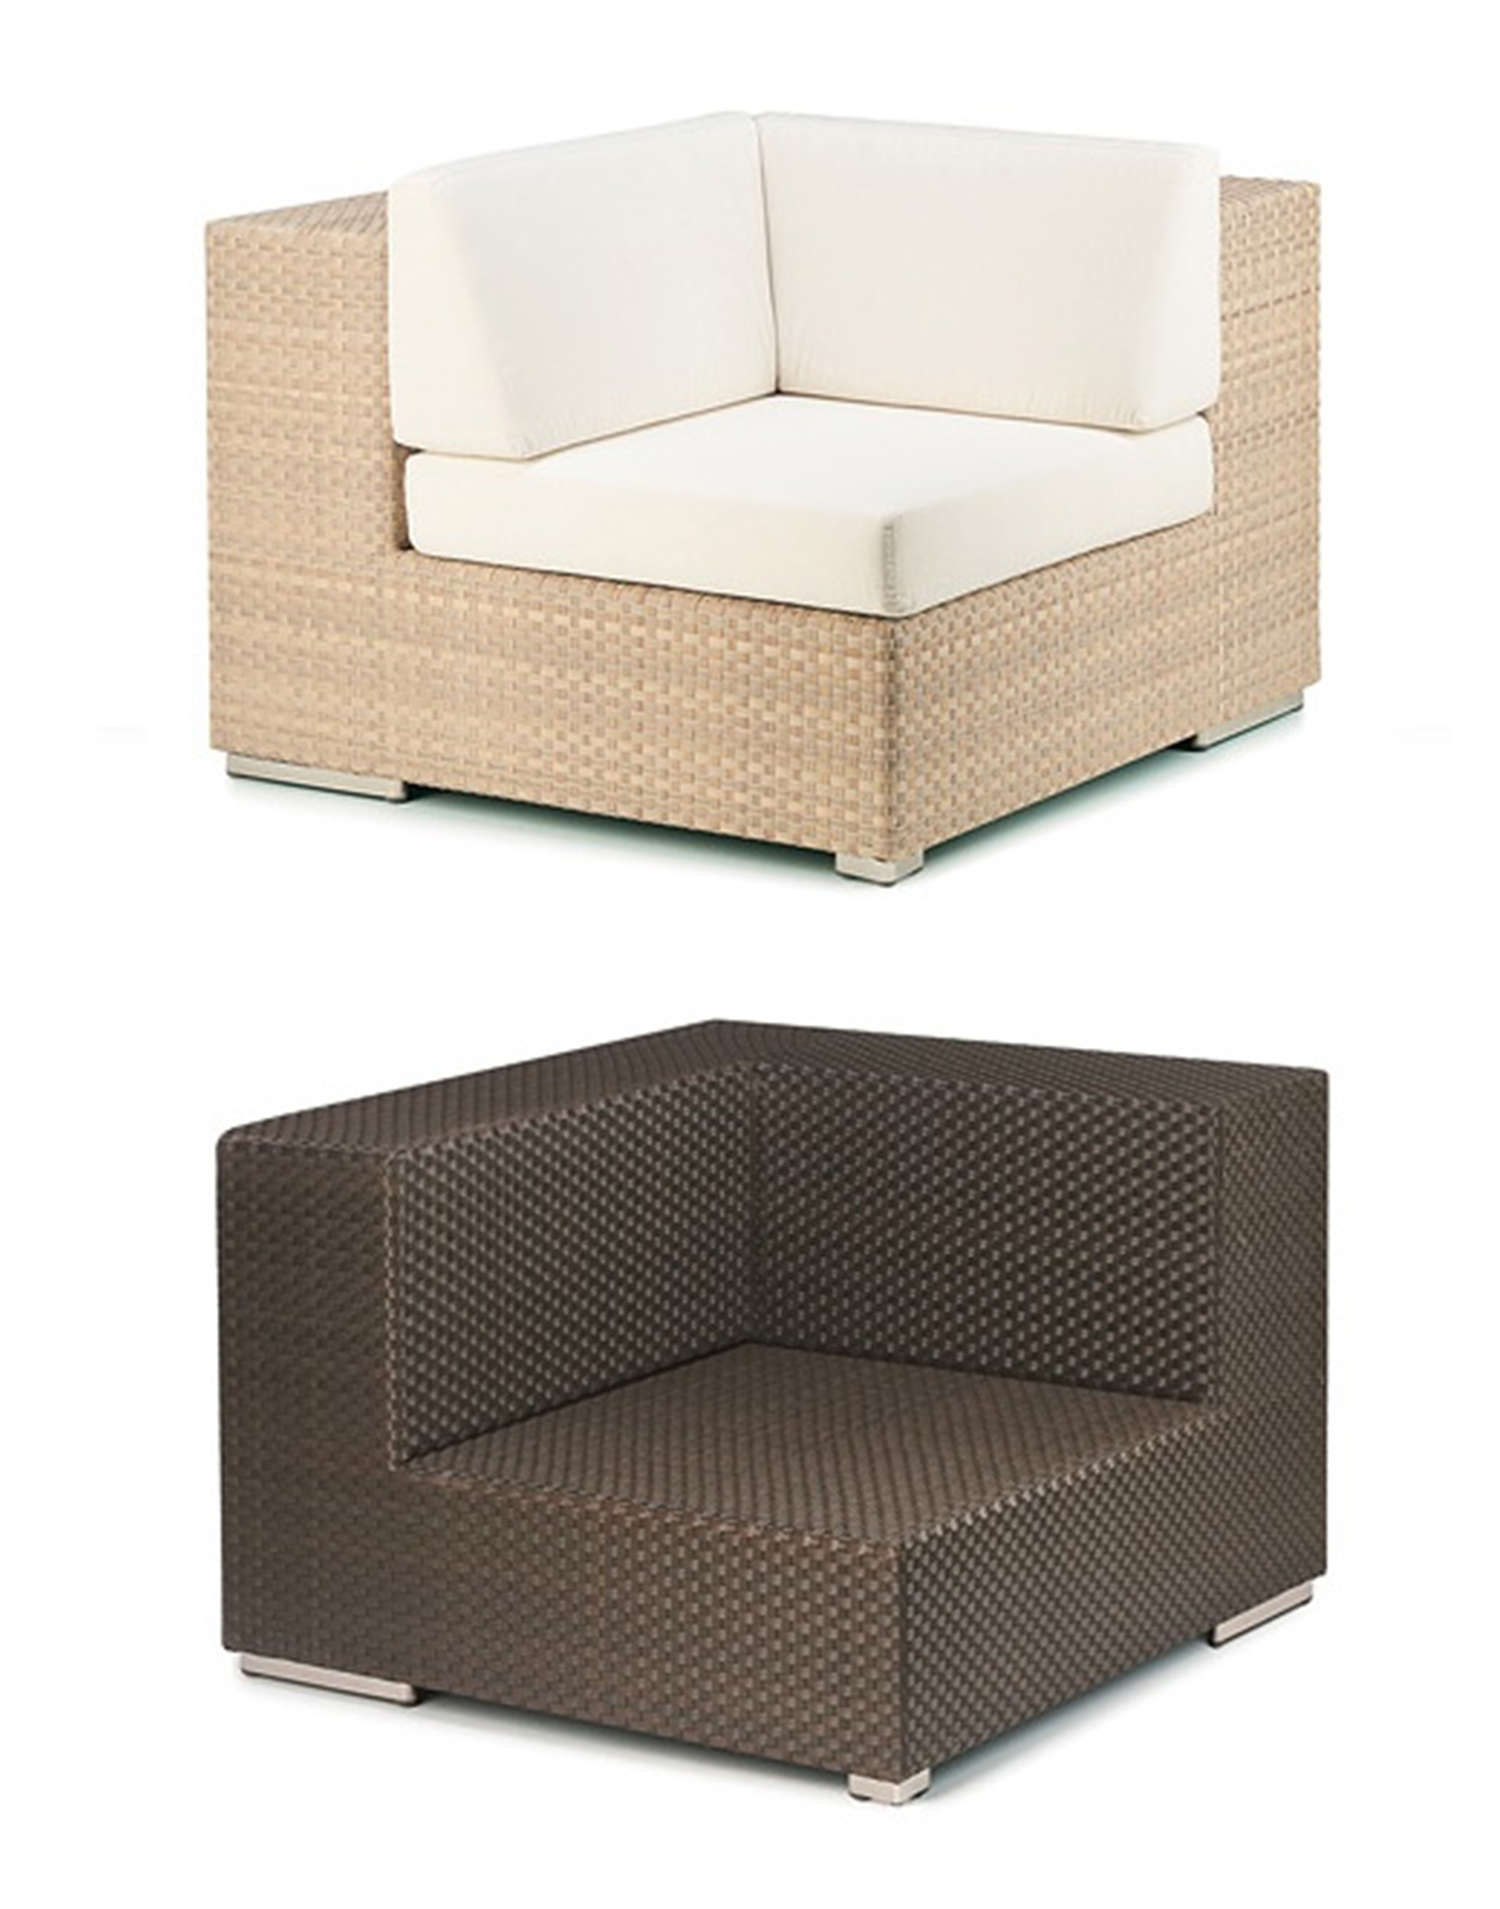 rattan gartenmoebel guenstig fotos das sieht wundersch ne. Black Bedroom Furniture Sets. Home Design Ideas